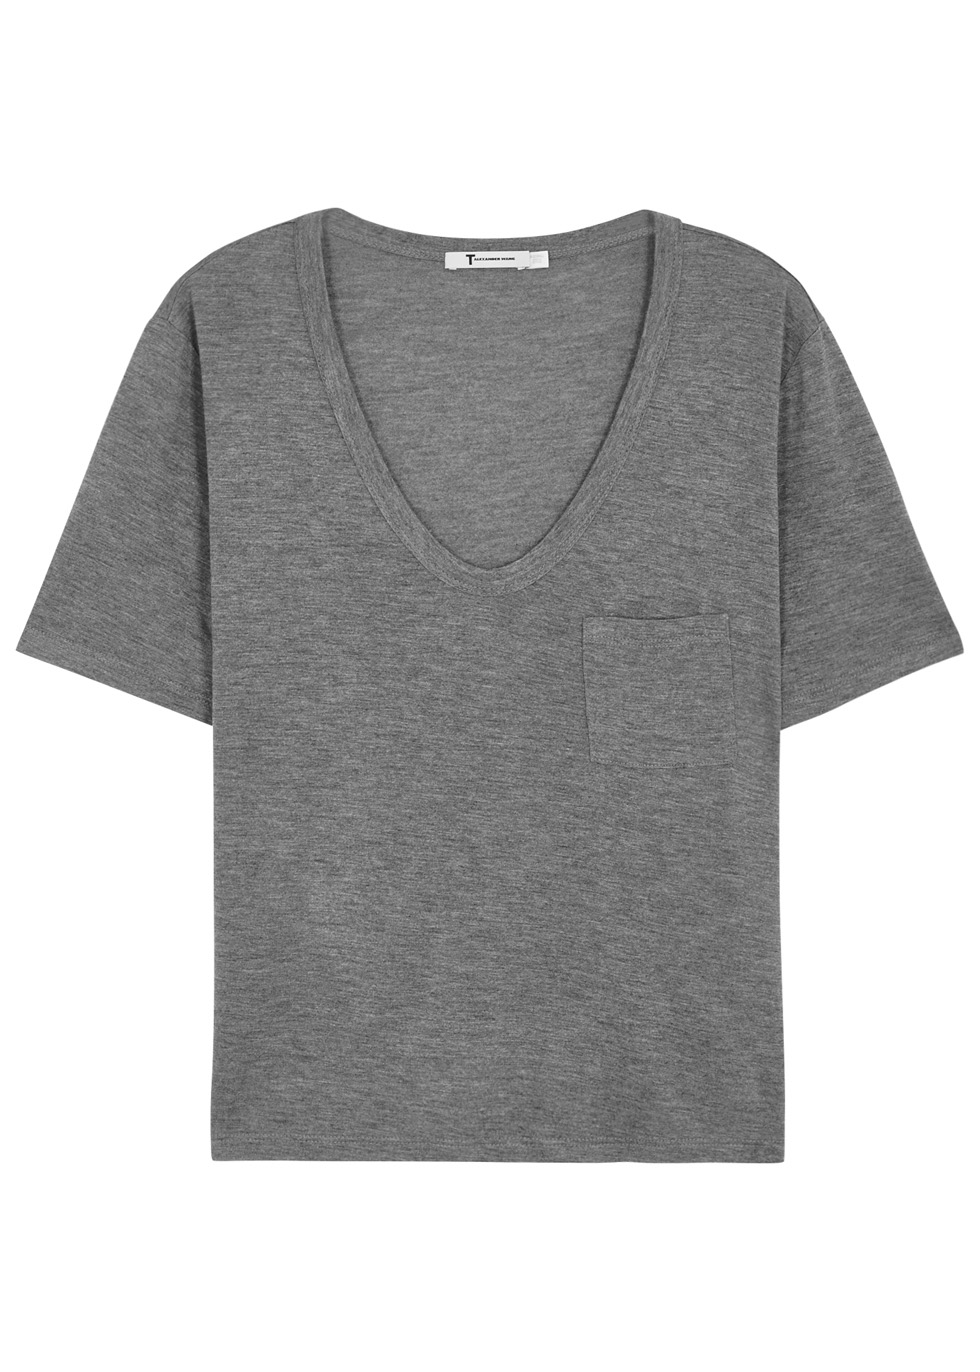 T BY ALEXANDER WANG GREY CROPPED JERSEY T-SHIRT